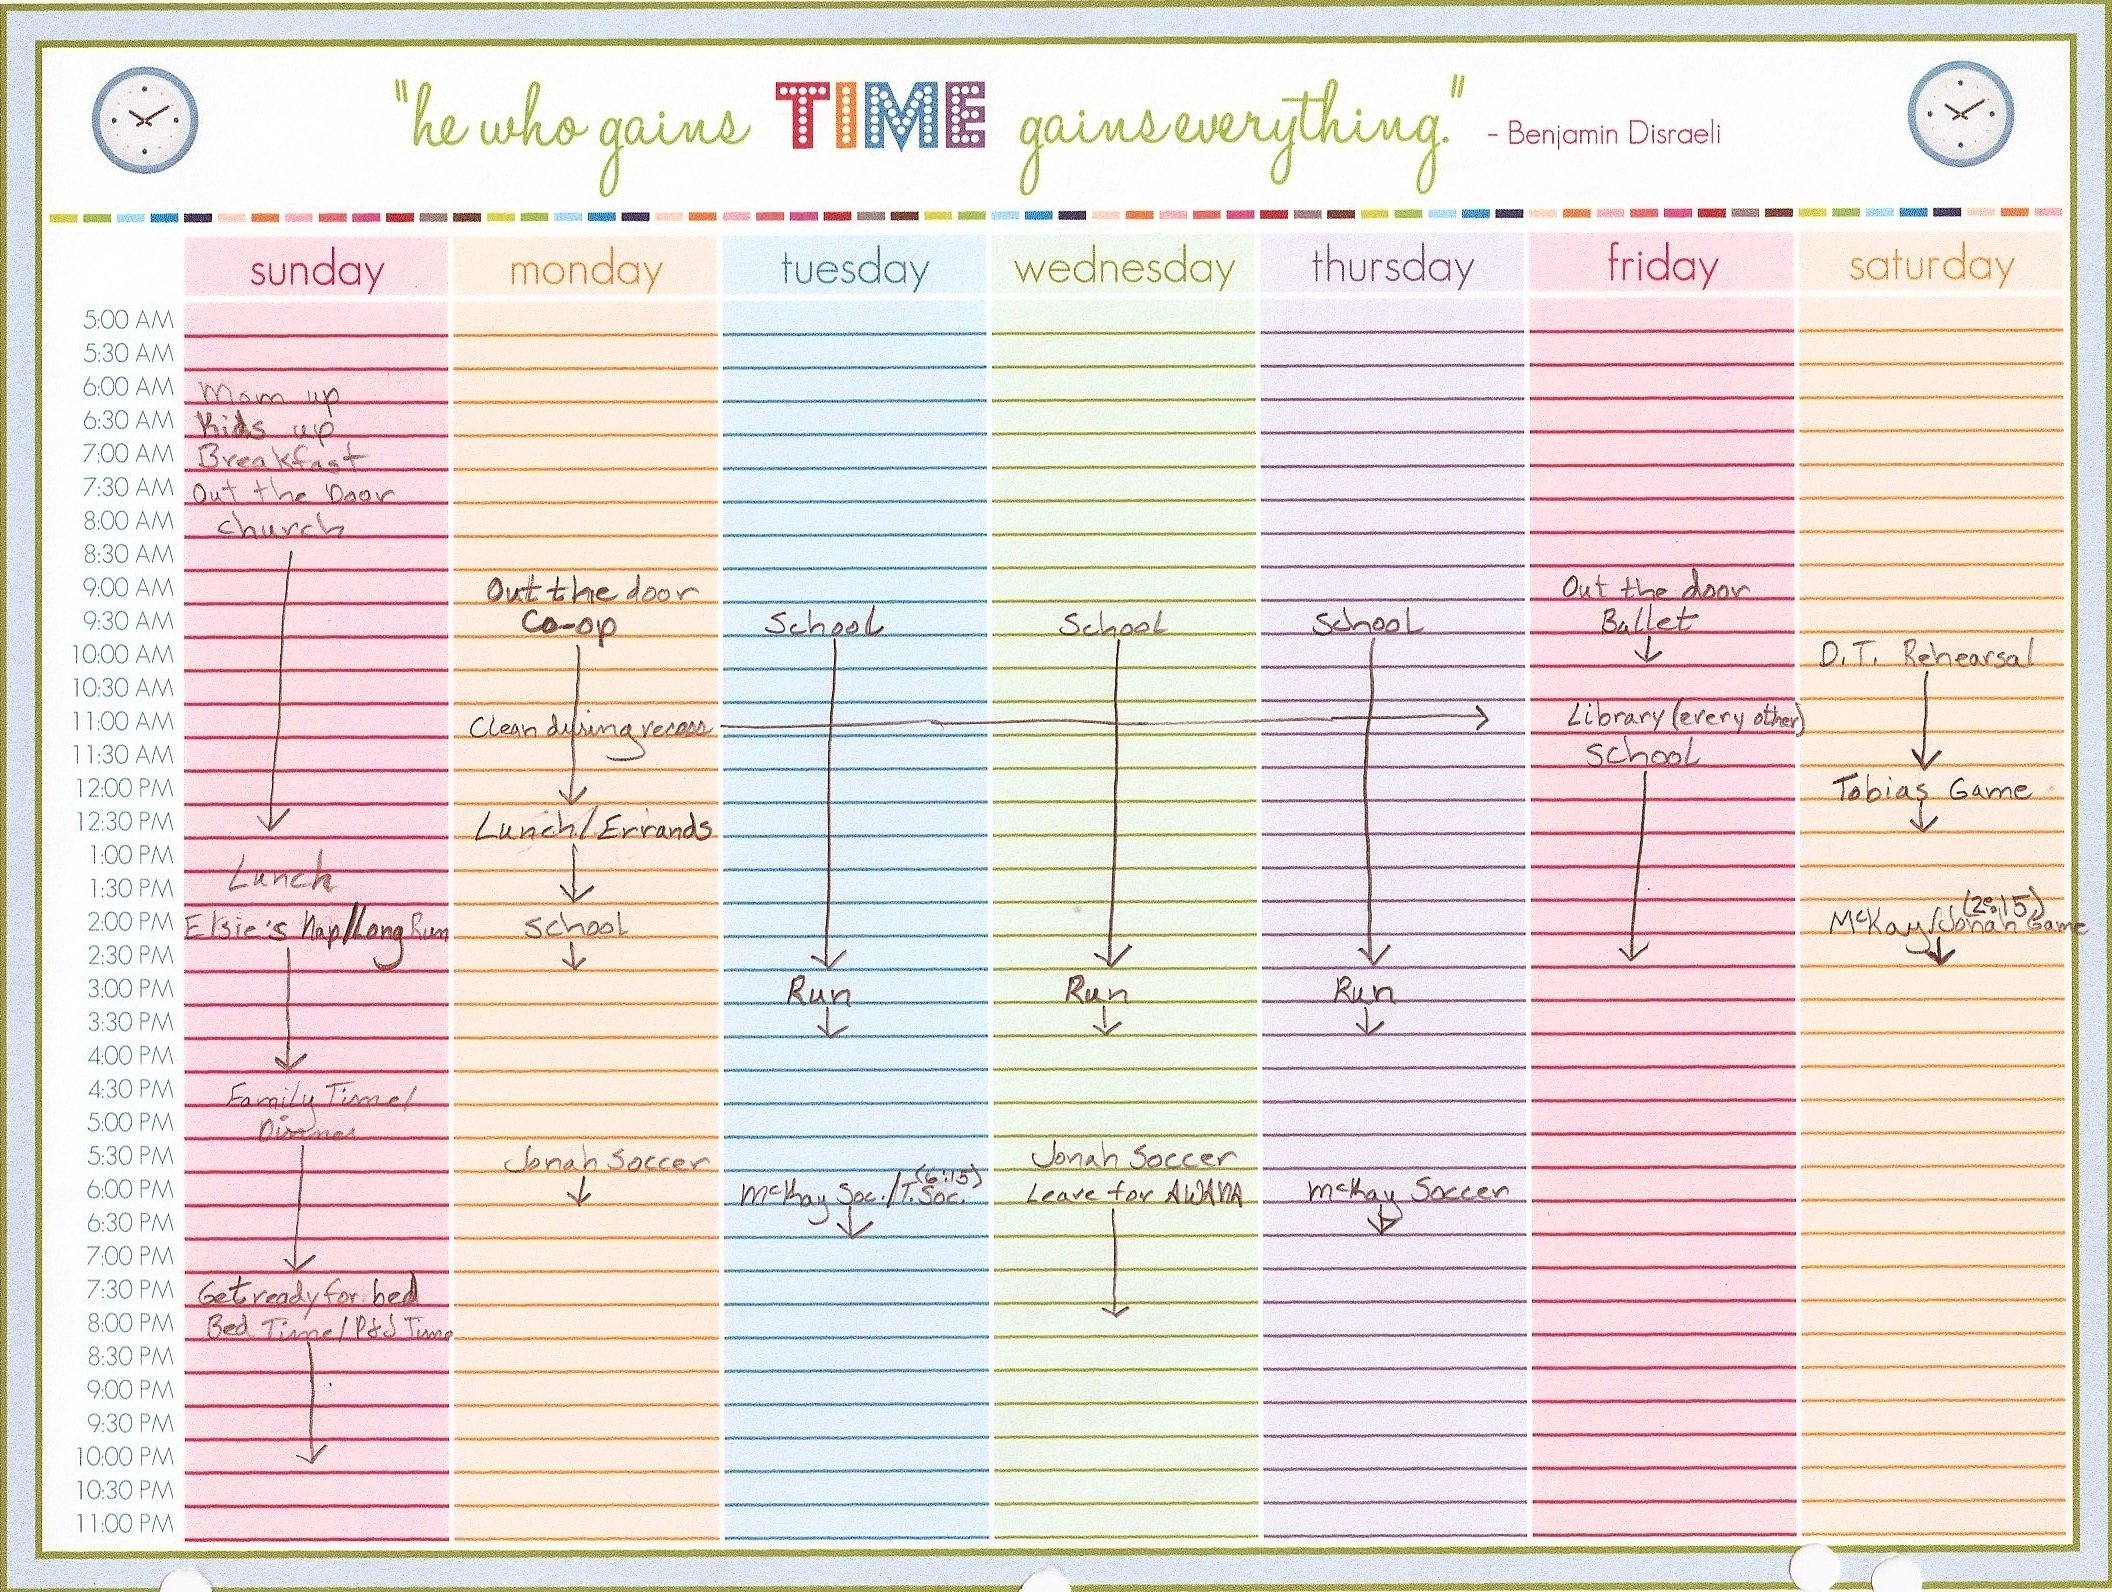 Printable Monthly Calendar With Time Slots - Calendar Printable Calendar With Hourly Slots